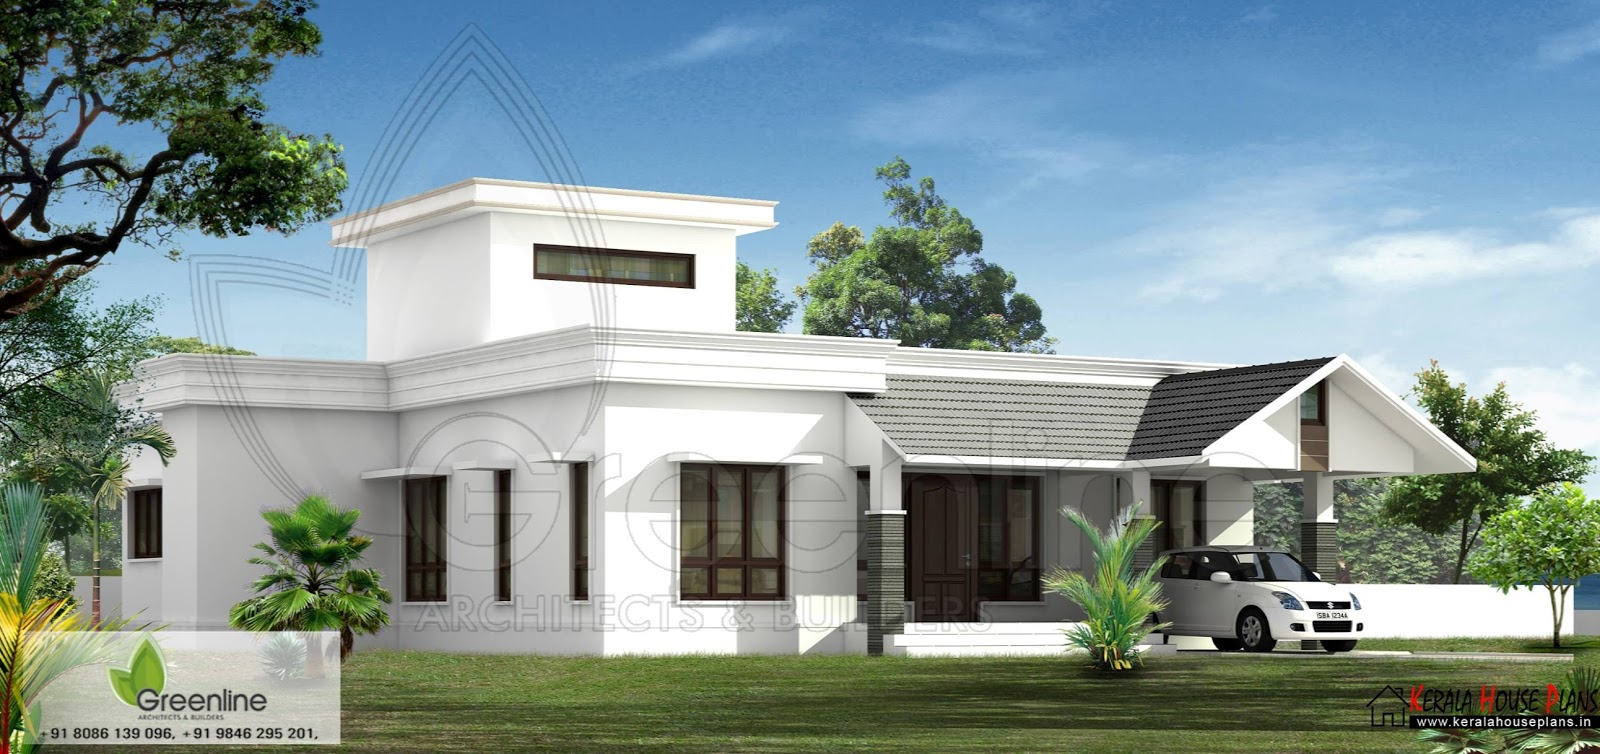 Kerala house Elevation and Photos in 1500 sqft side elevation